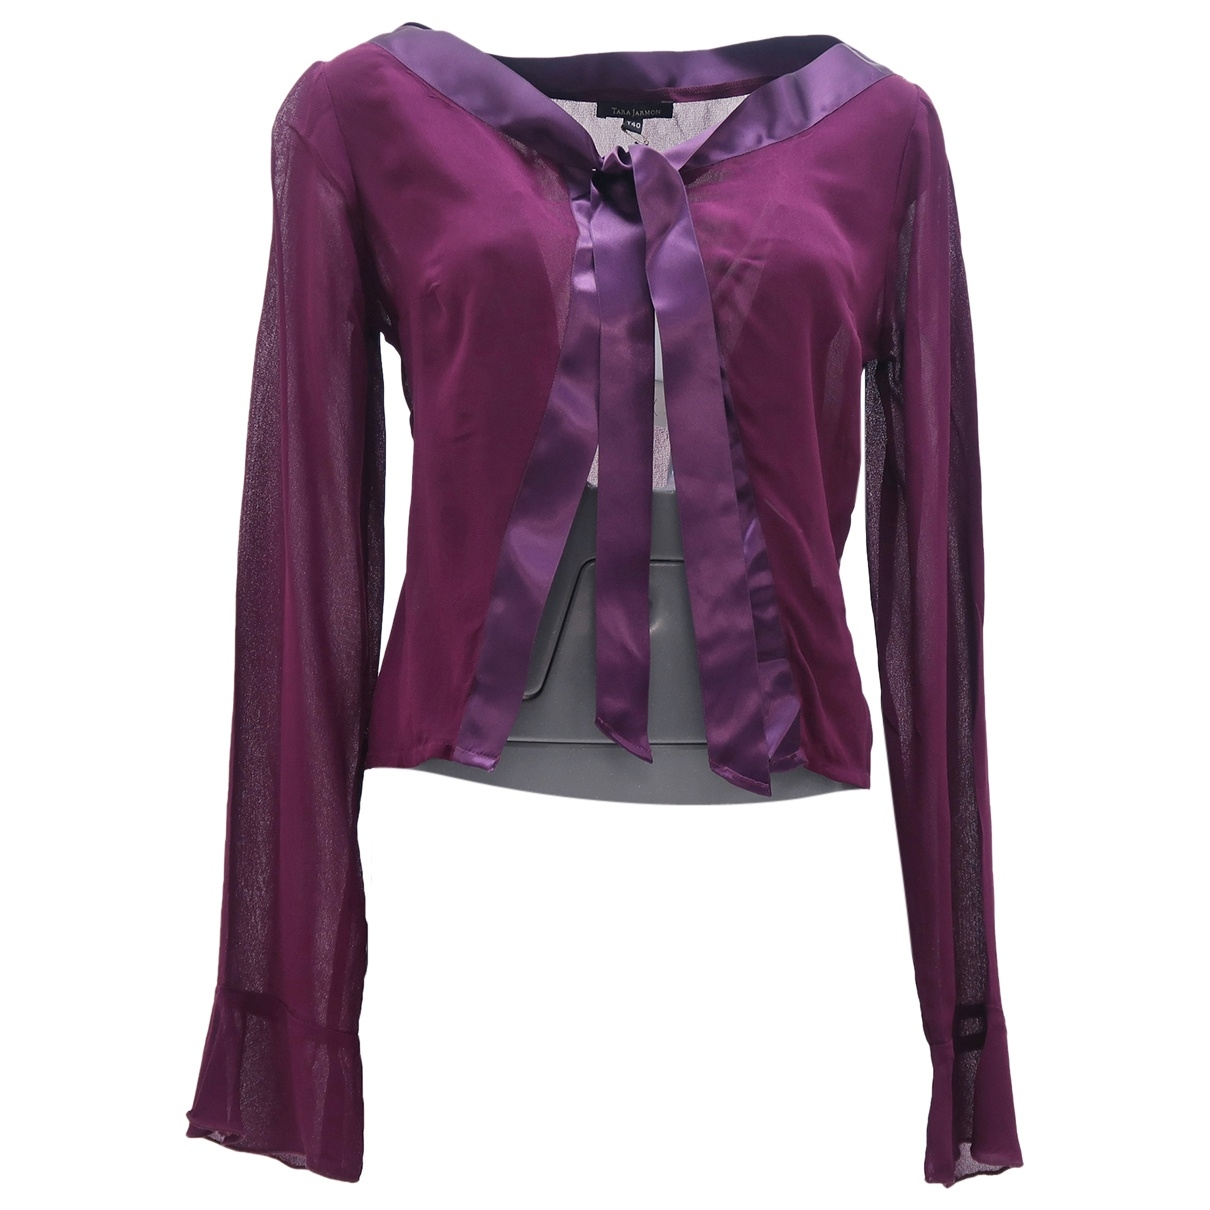 Tara Jarmon \N Purple  top for Women 40 FR